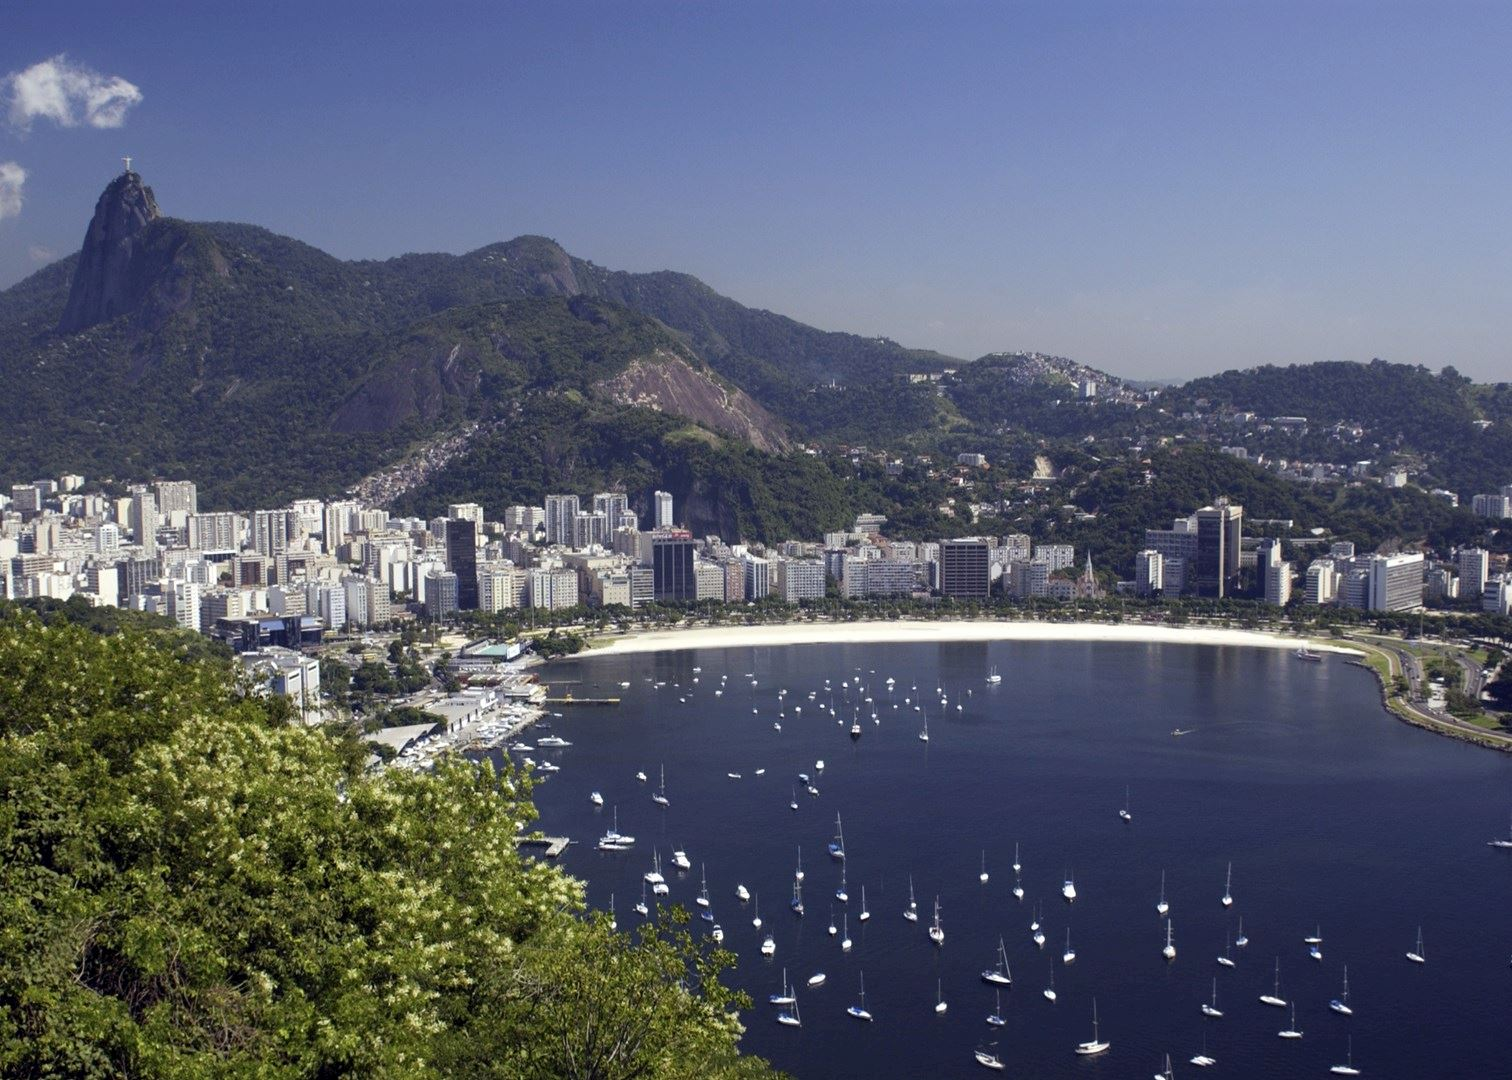 Visit Rio de Janeiro on a trip to Brazil | Audley Travel